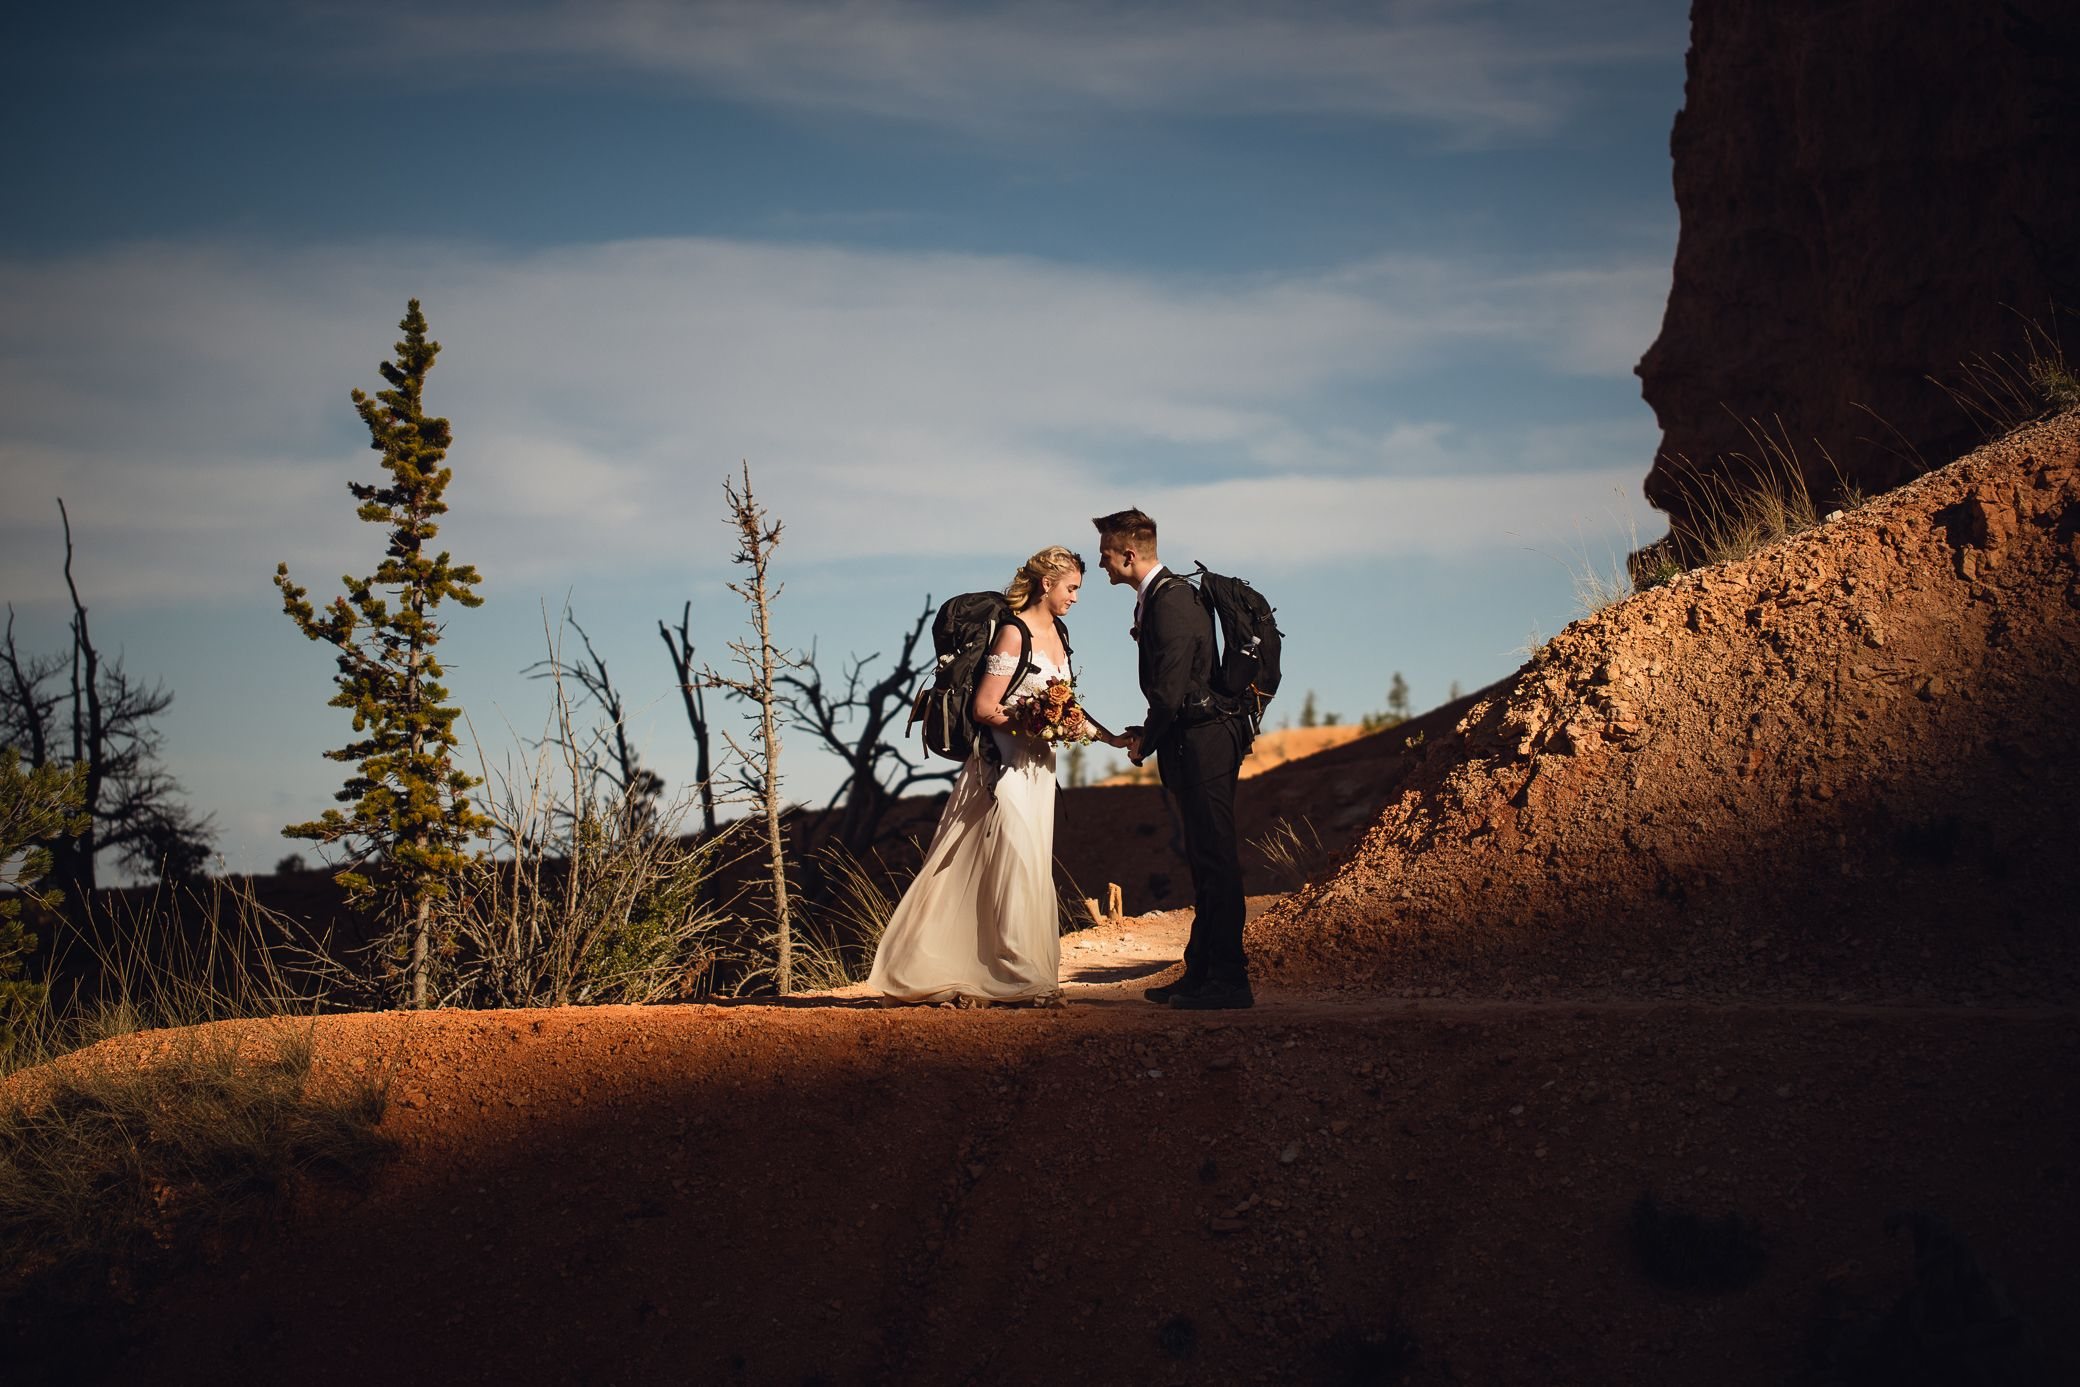 Backpacking bride and groom at Bryce Canyon National Park.